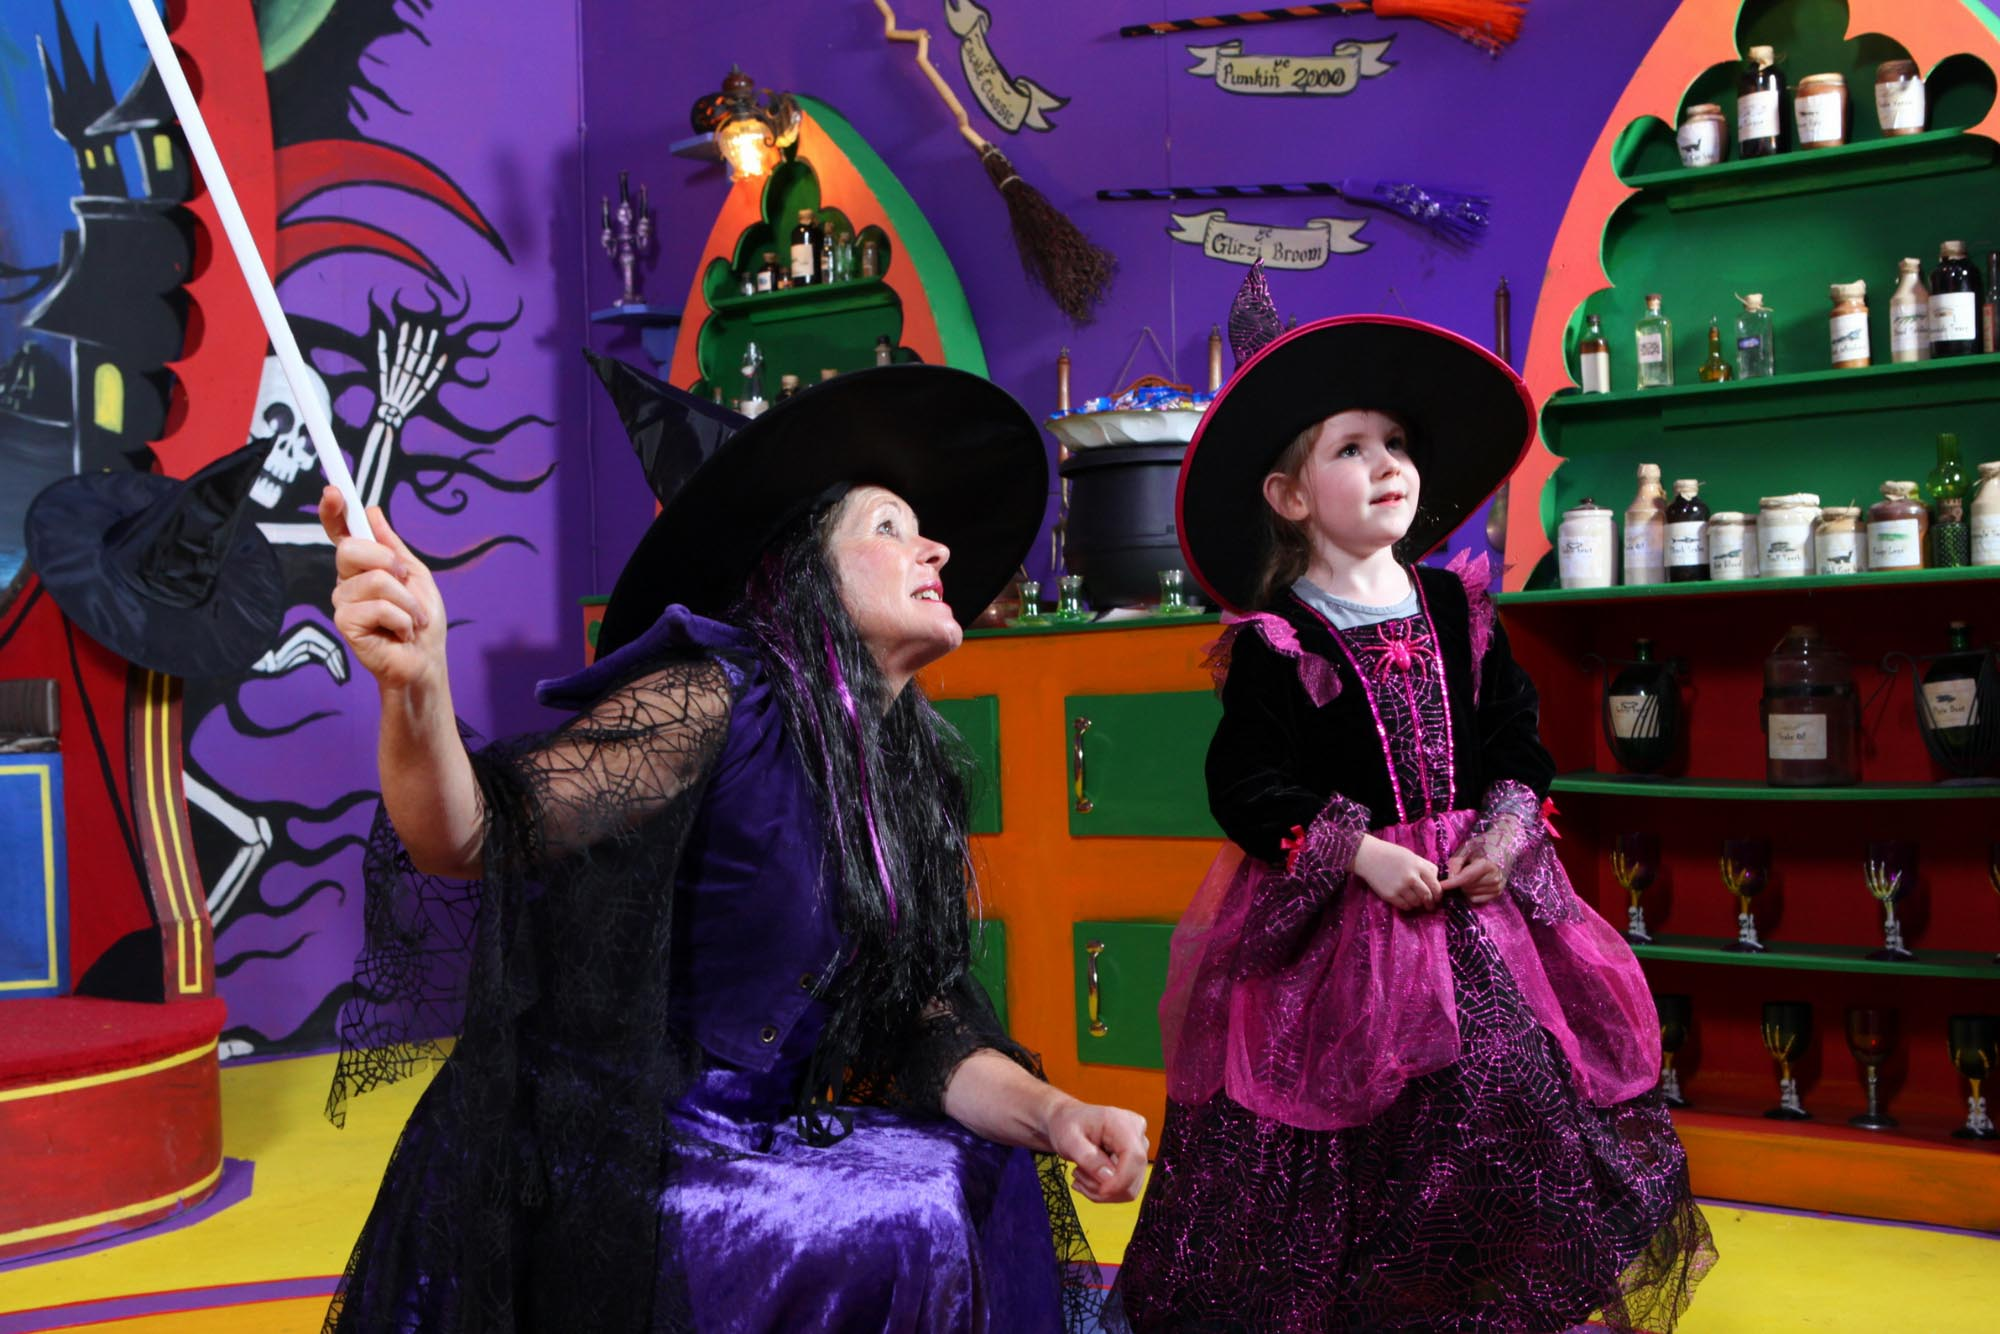 Spooktacular Happy Halloween experience returns to Limerick